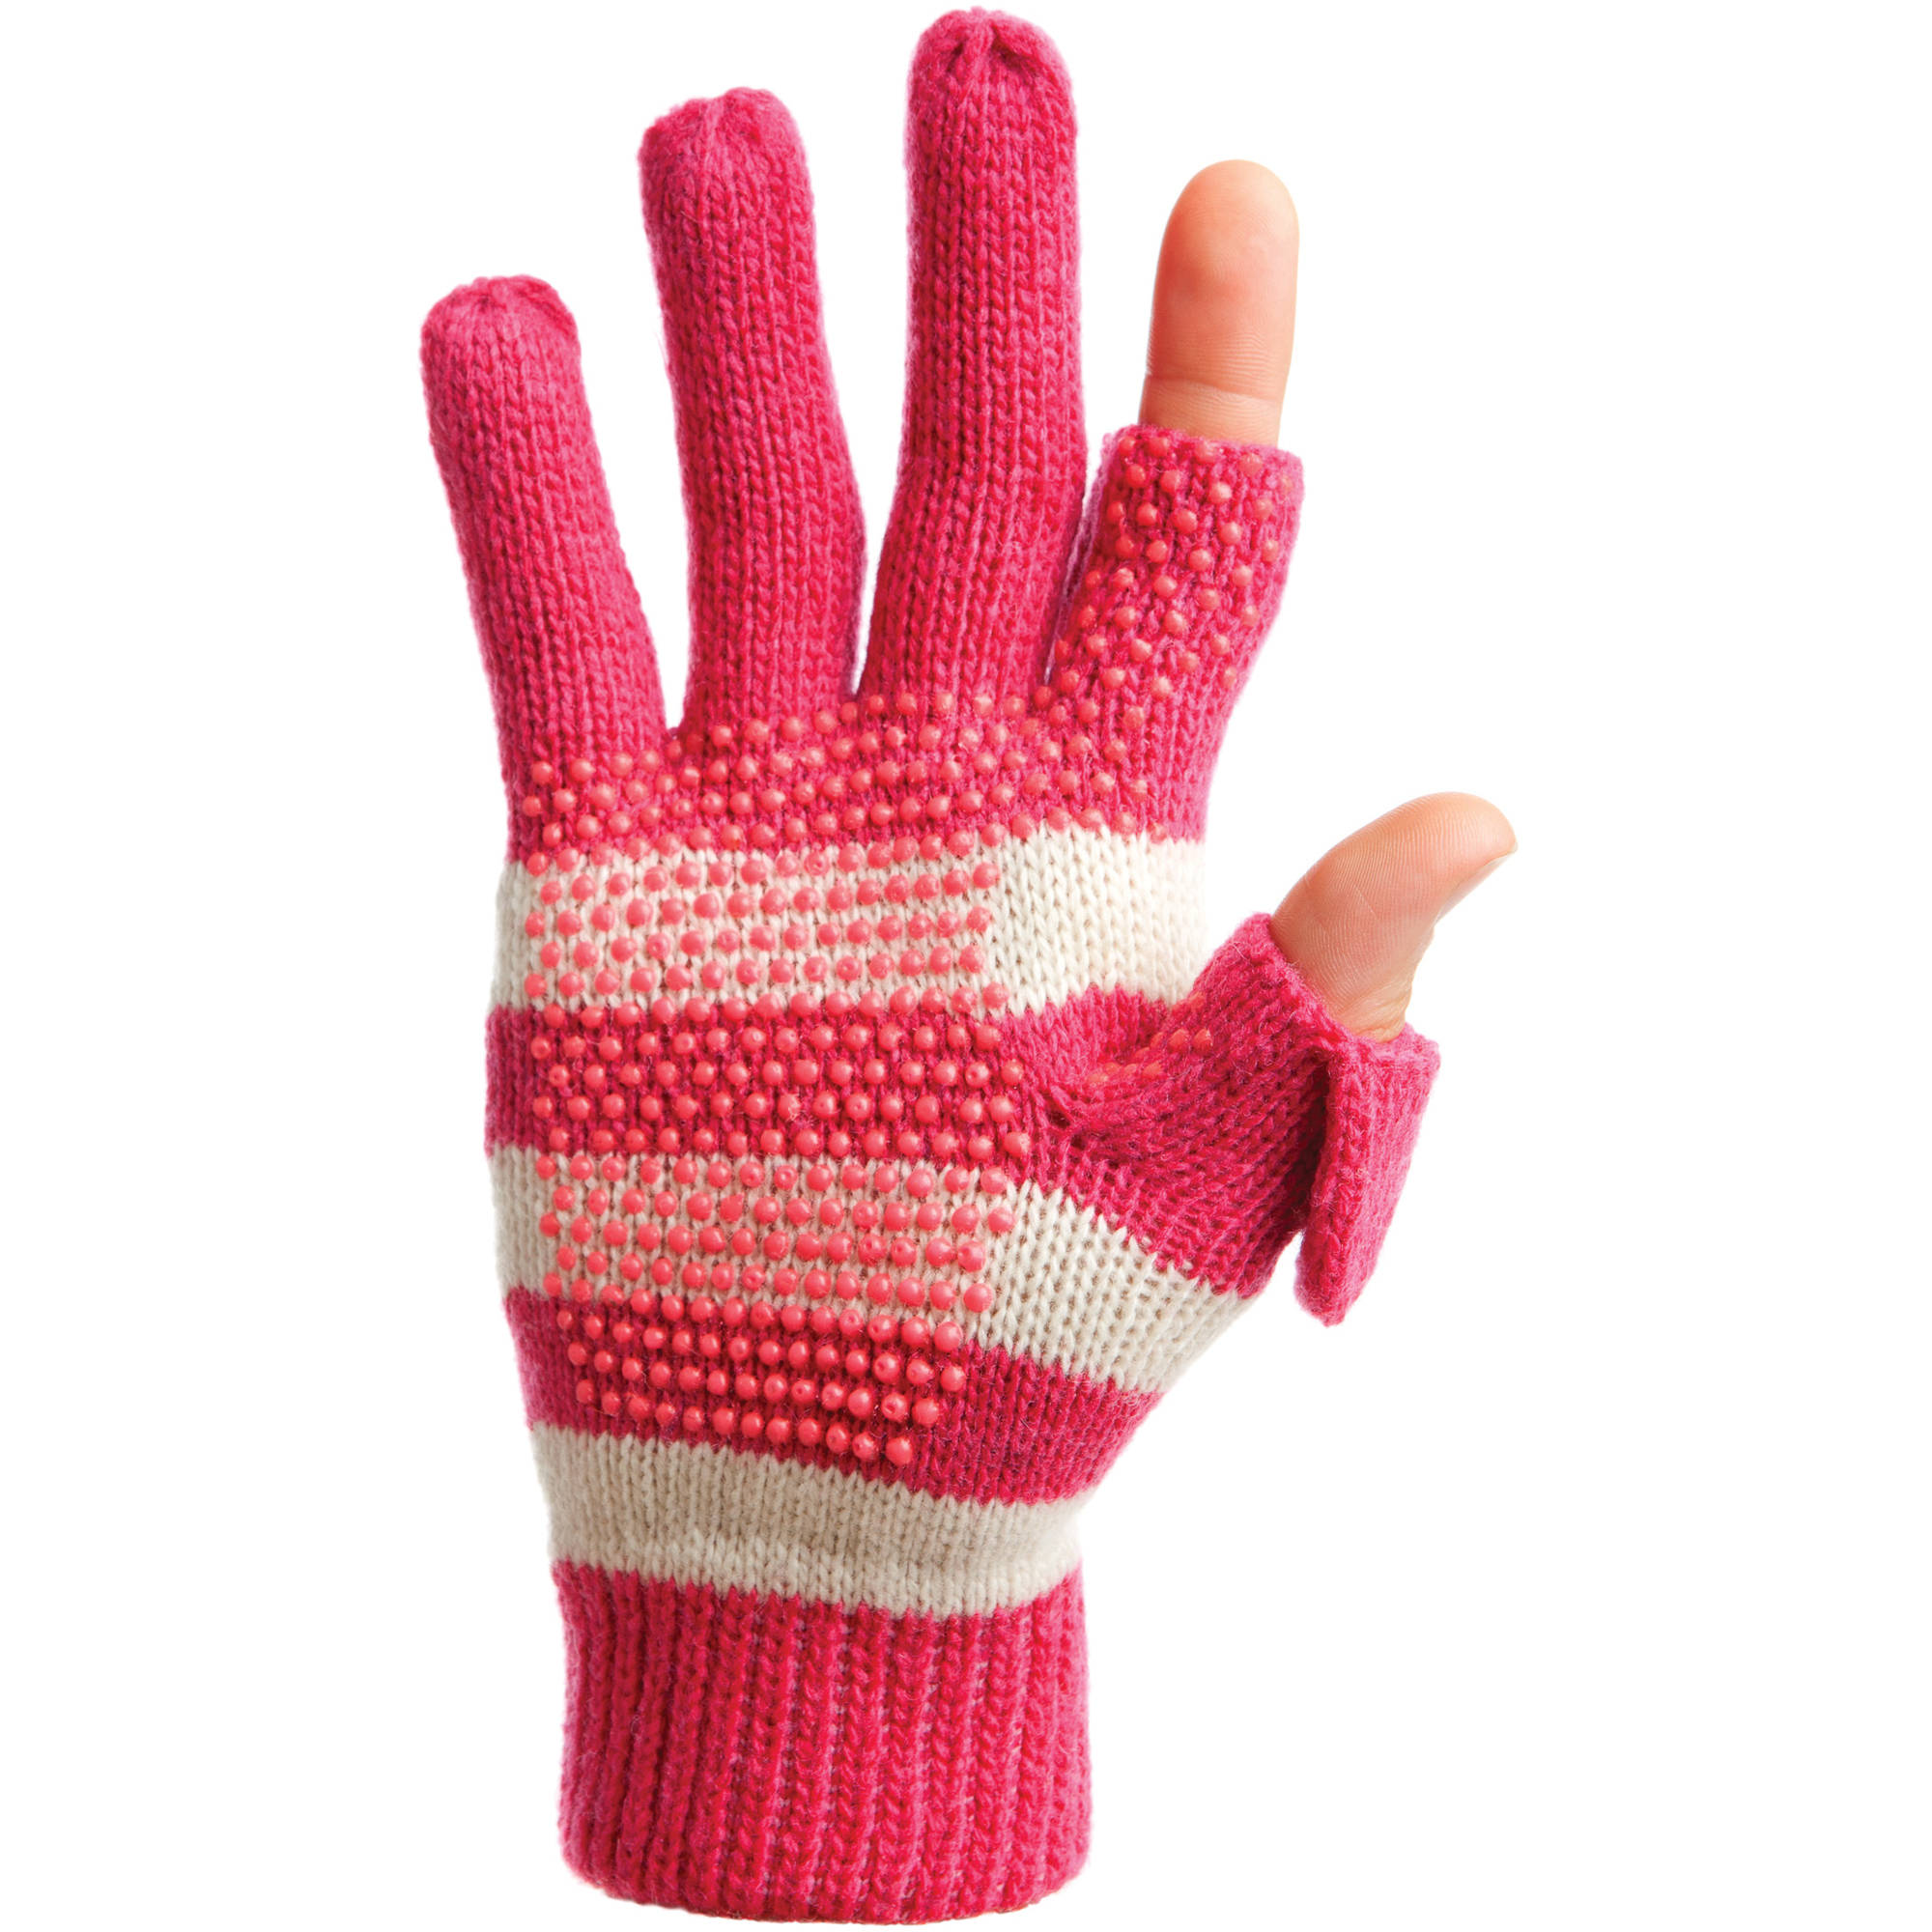 Knit gloves the best to wear in the cold weather